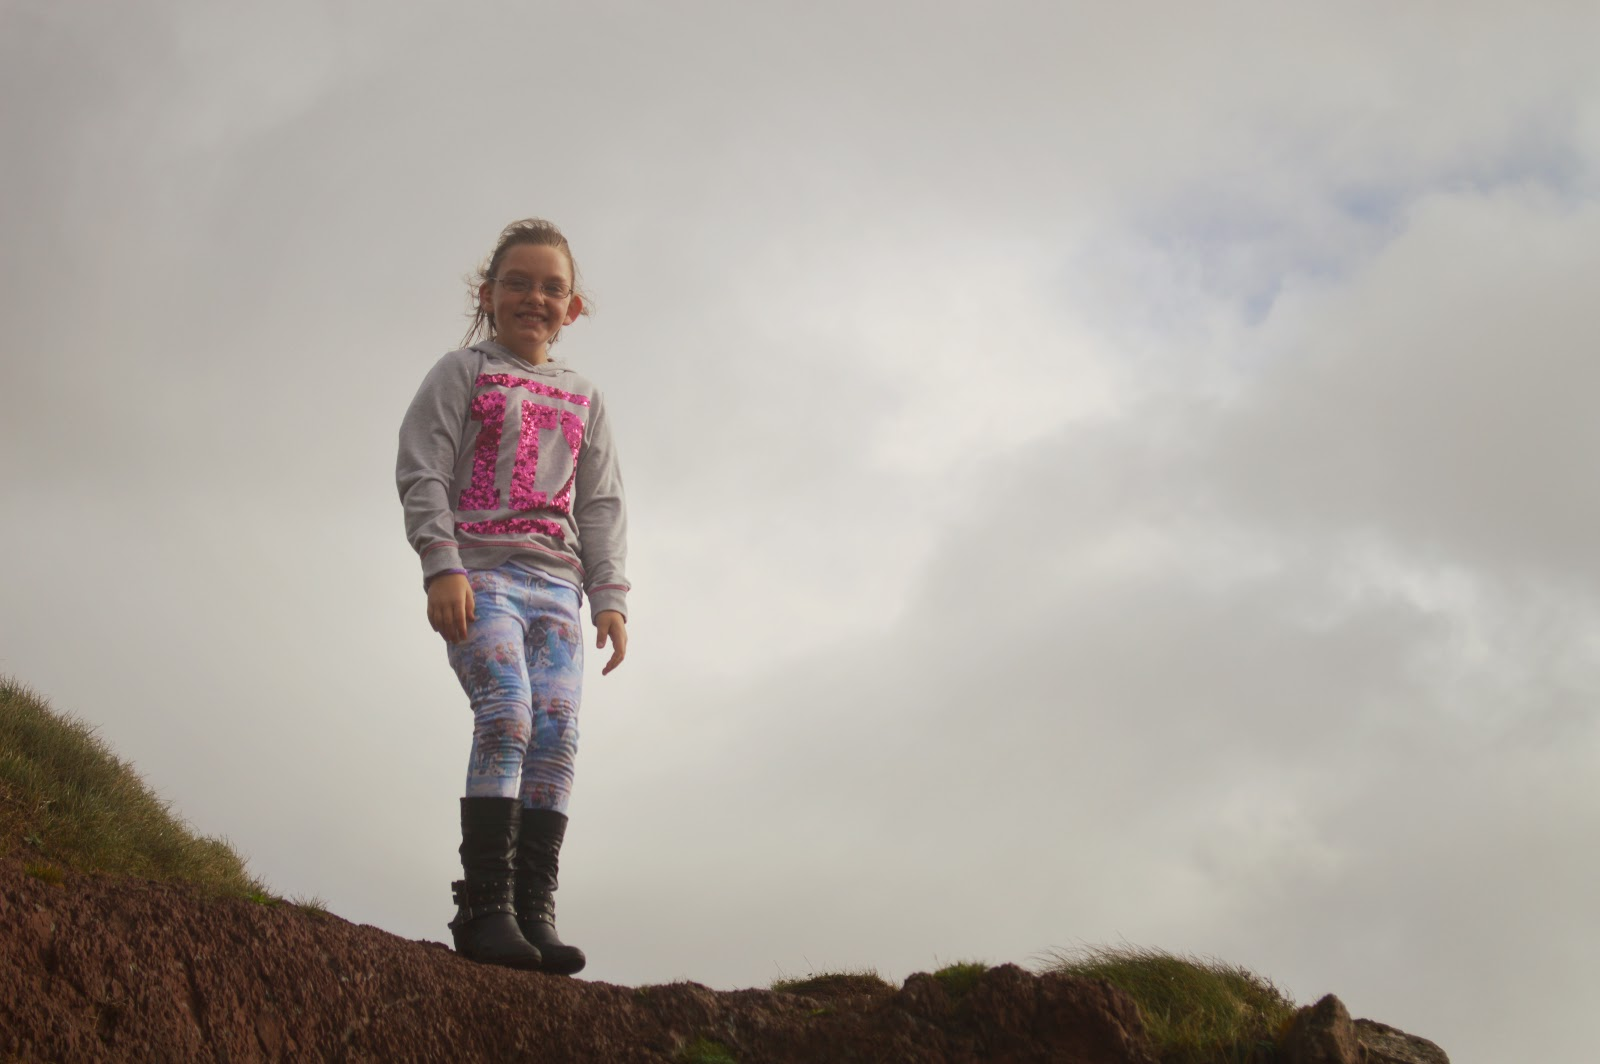 Rebecca on top of Rocks at Manorbier Beach, Pembrokeshire